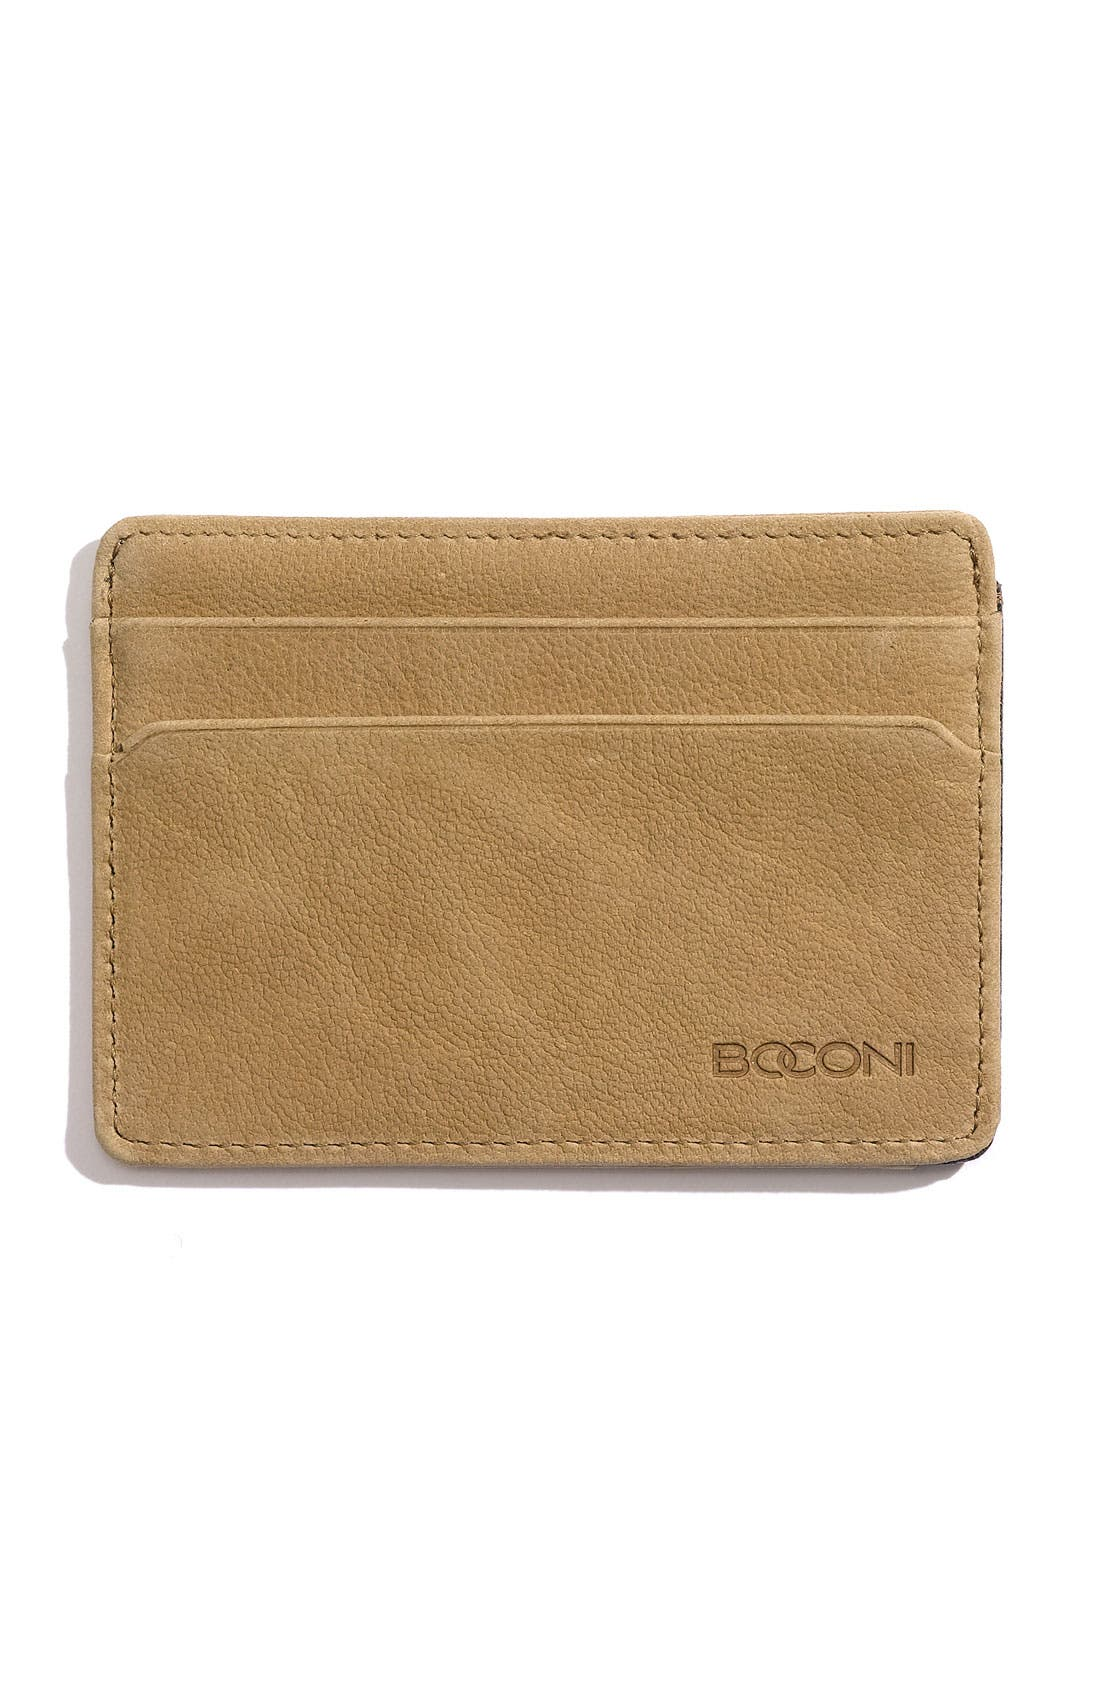 Alternate Image 1 Selected - Boconi 'Leon' Leather Credit Card Case